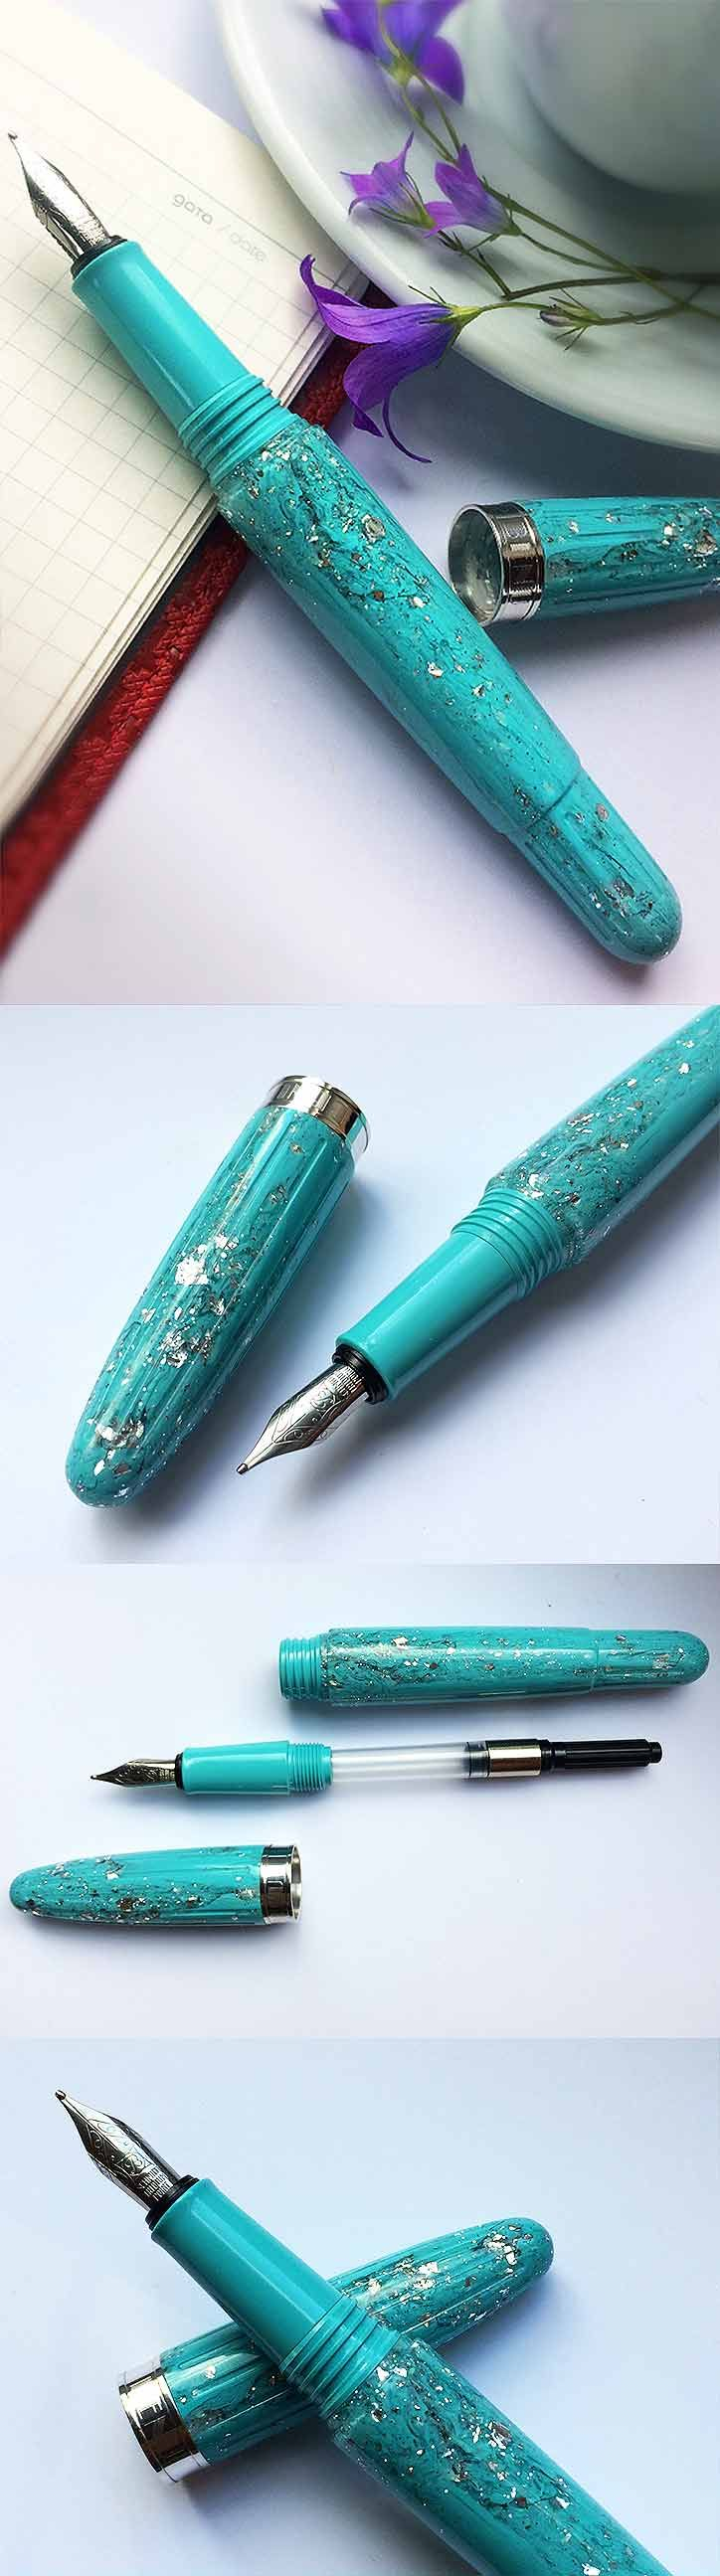 Mint Ice Fountain Pen, Essence collection